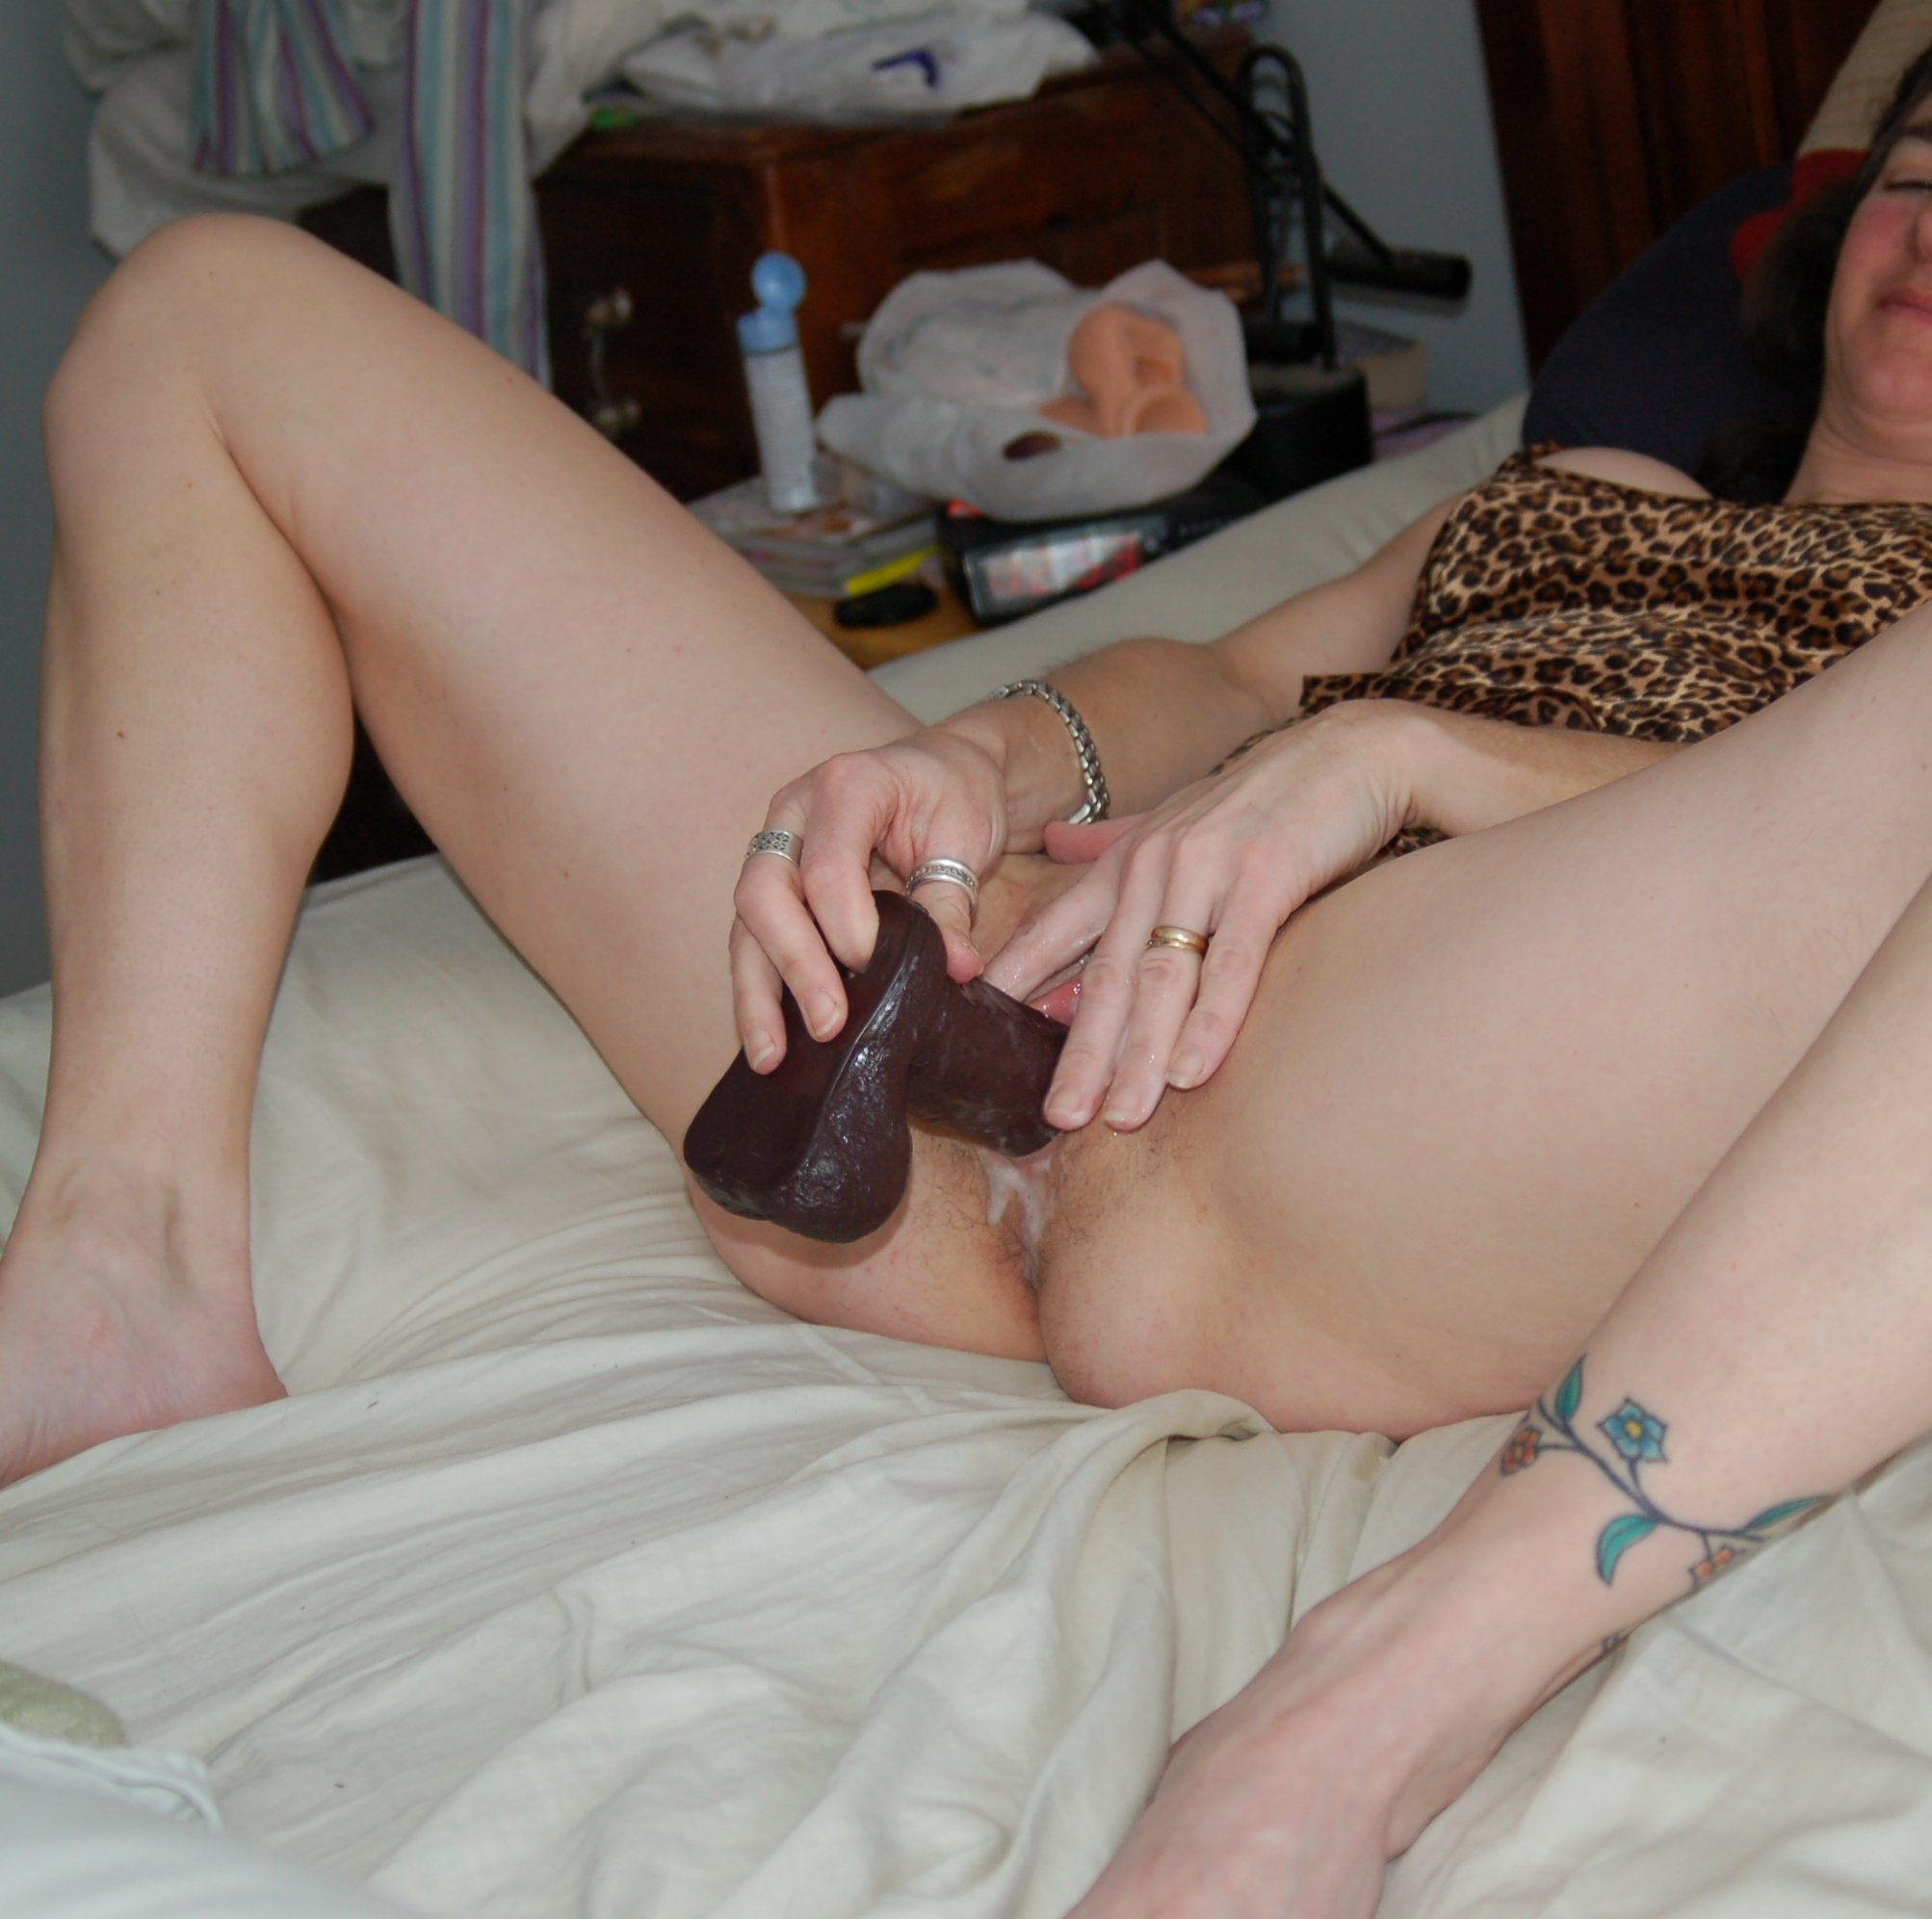 sex feet asian porn with stripers